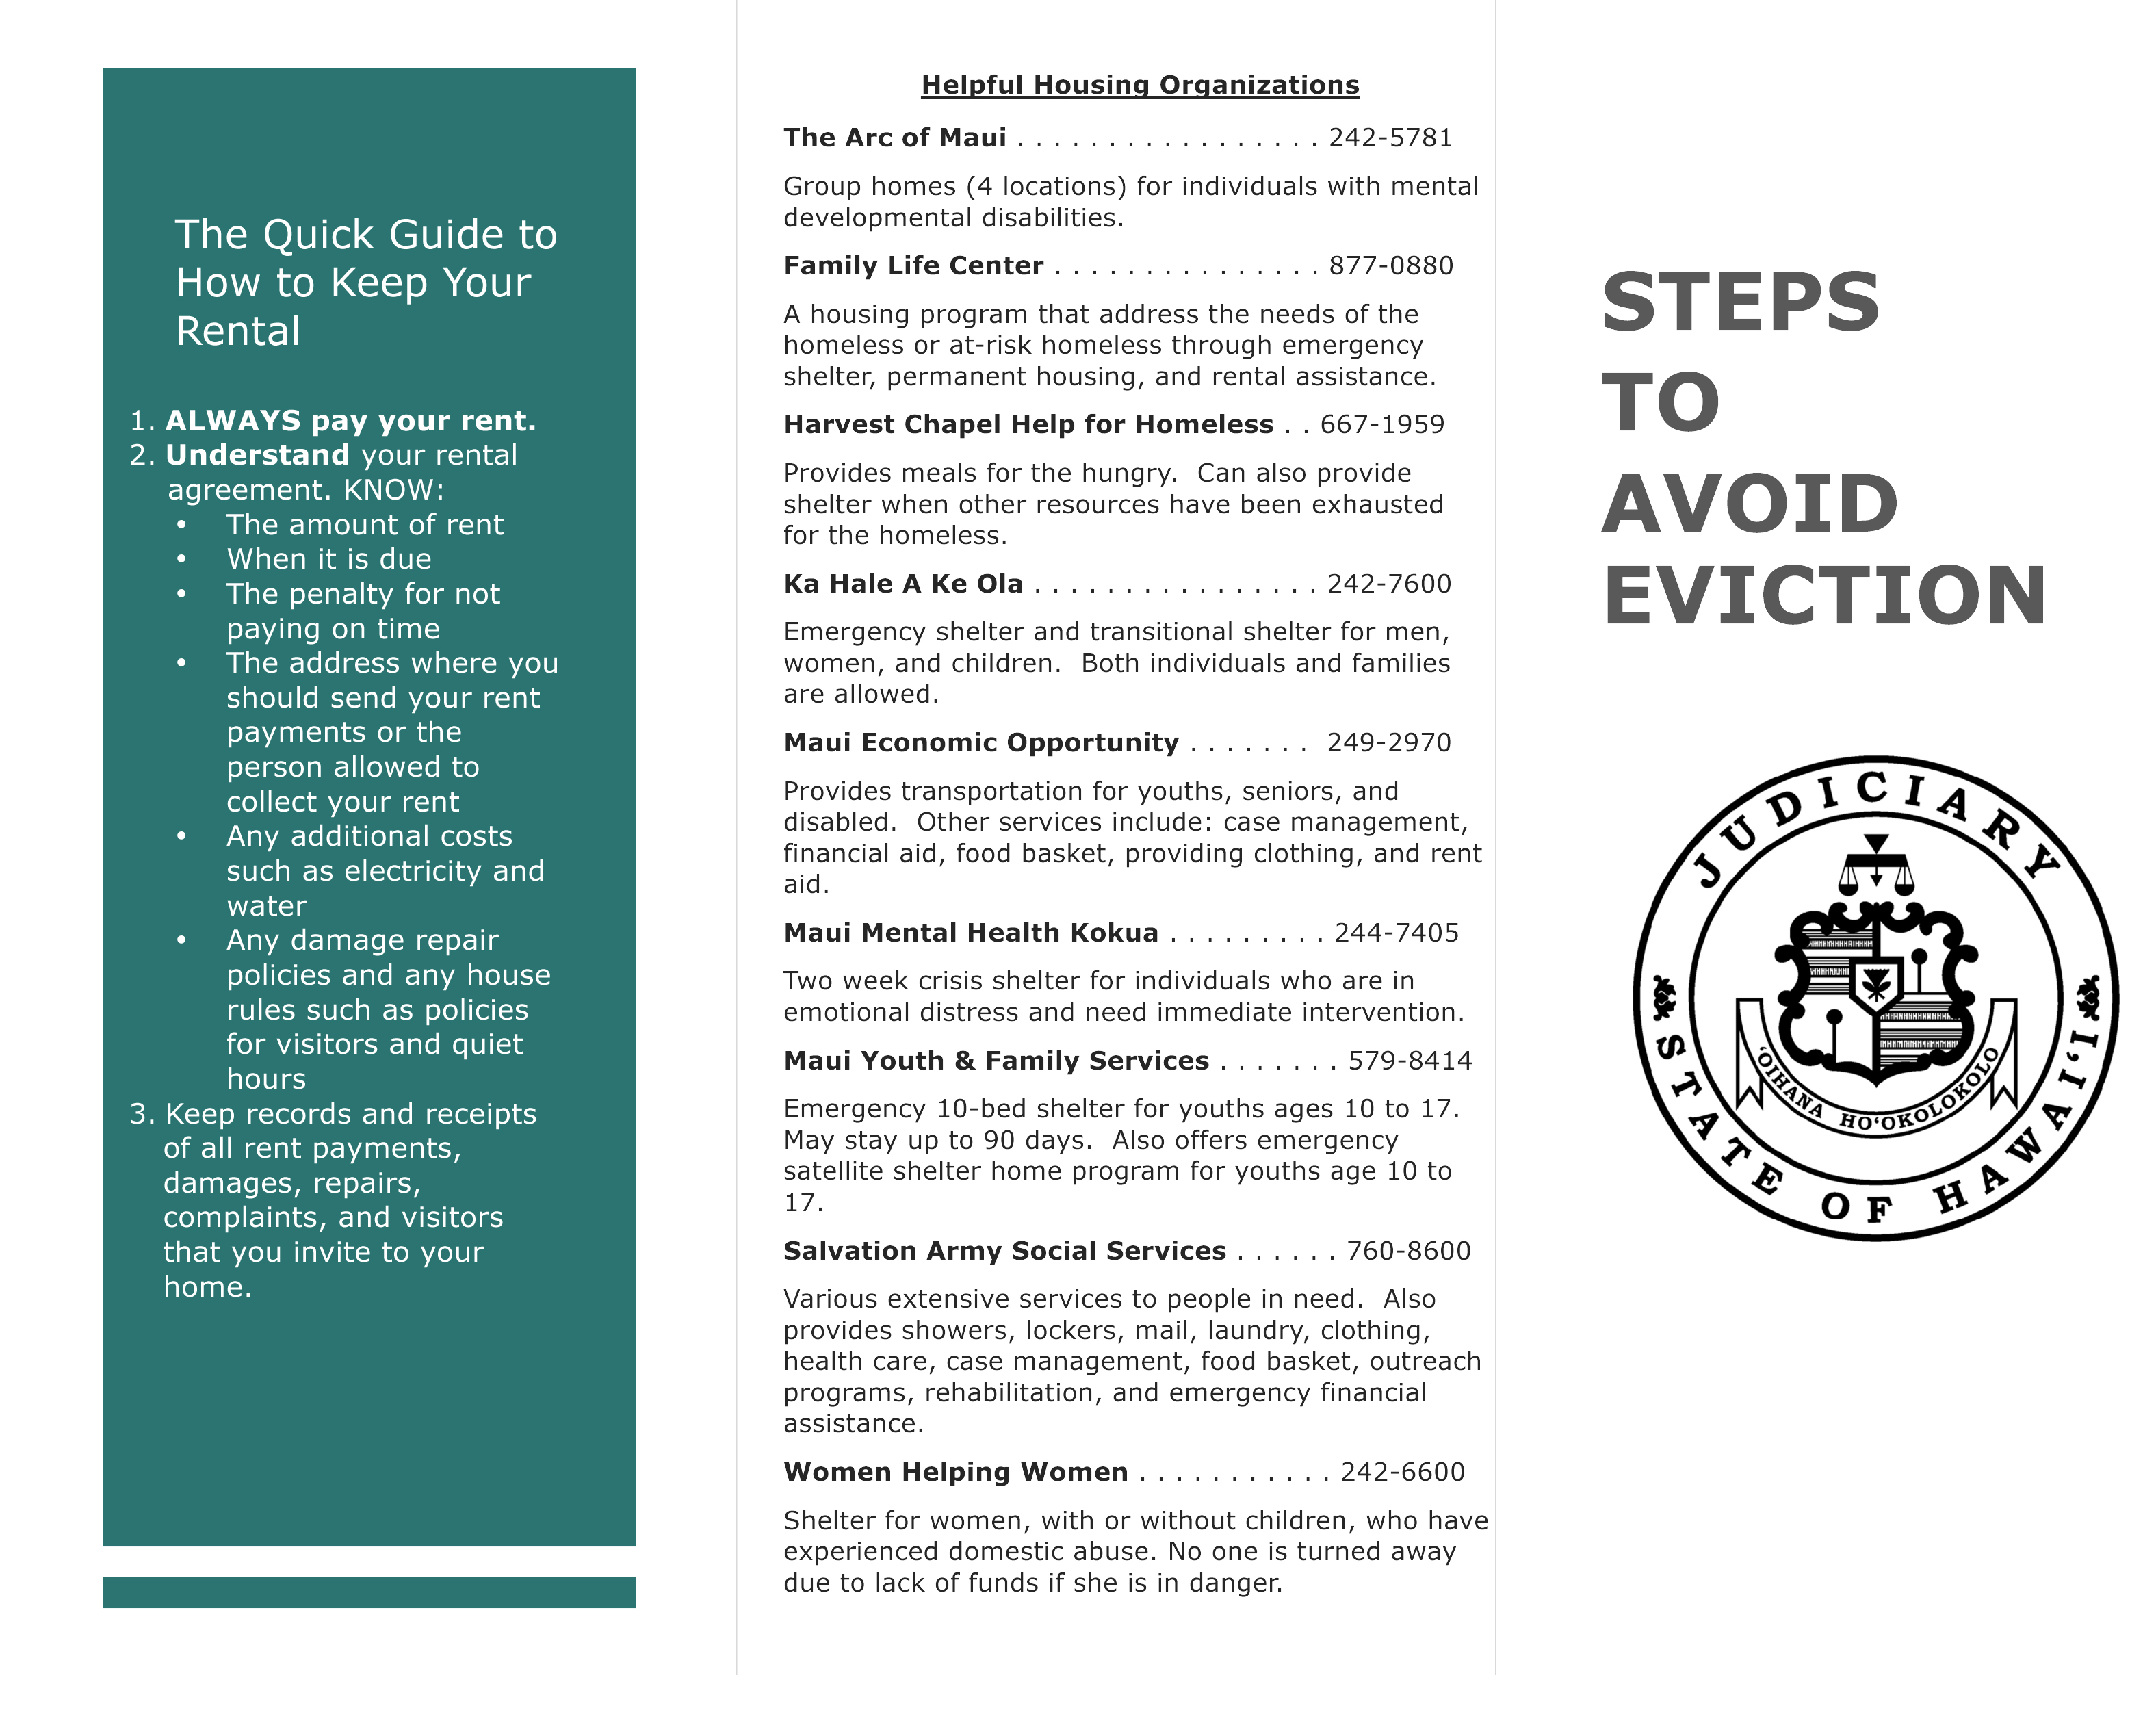 STAE Brochure Page 1. Click image to view in greater detail.